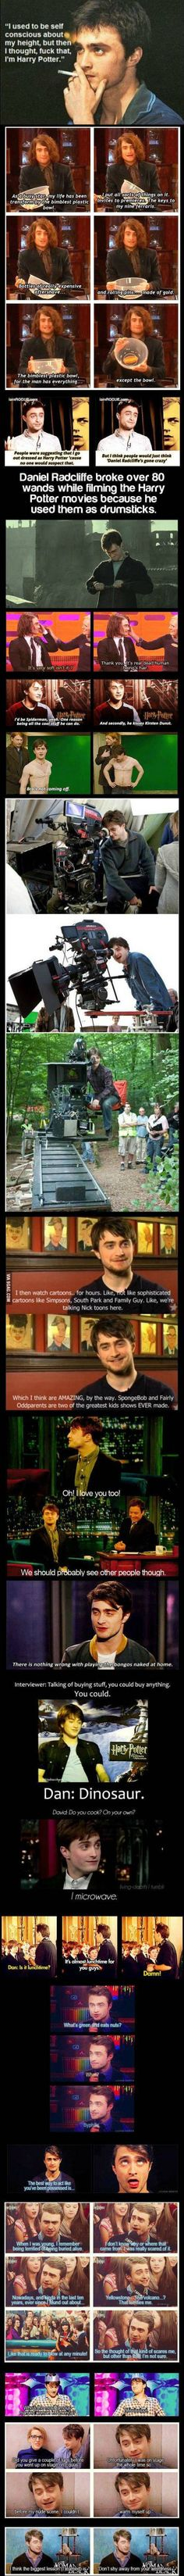 Daniel Radcliffe is like the male version of Jennifer Lawrence...I love him!